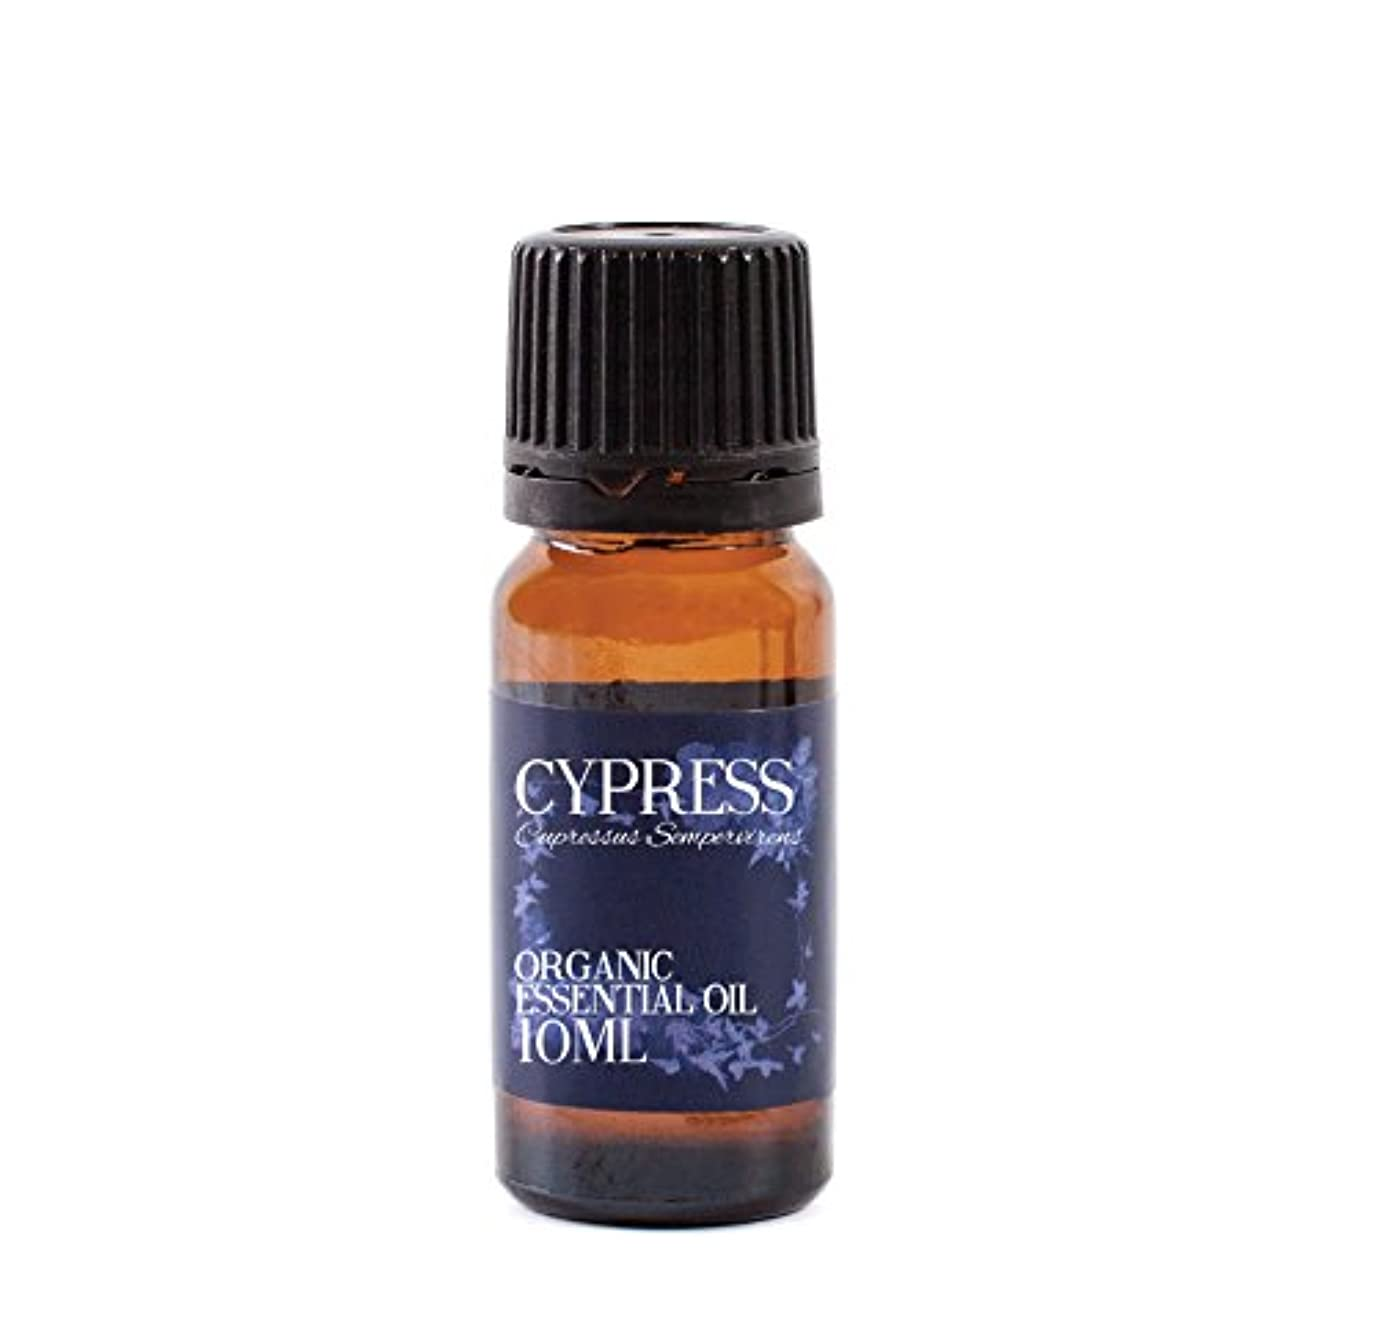 Cypress Organic Essential Oil - 10ml - 100% Pure